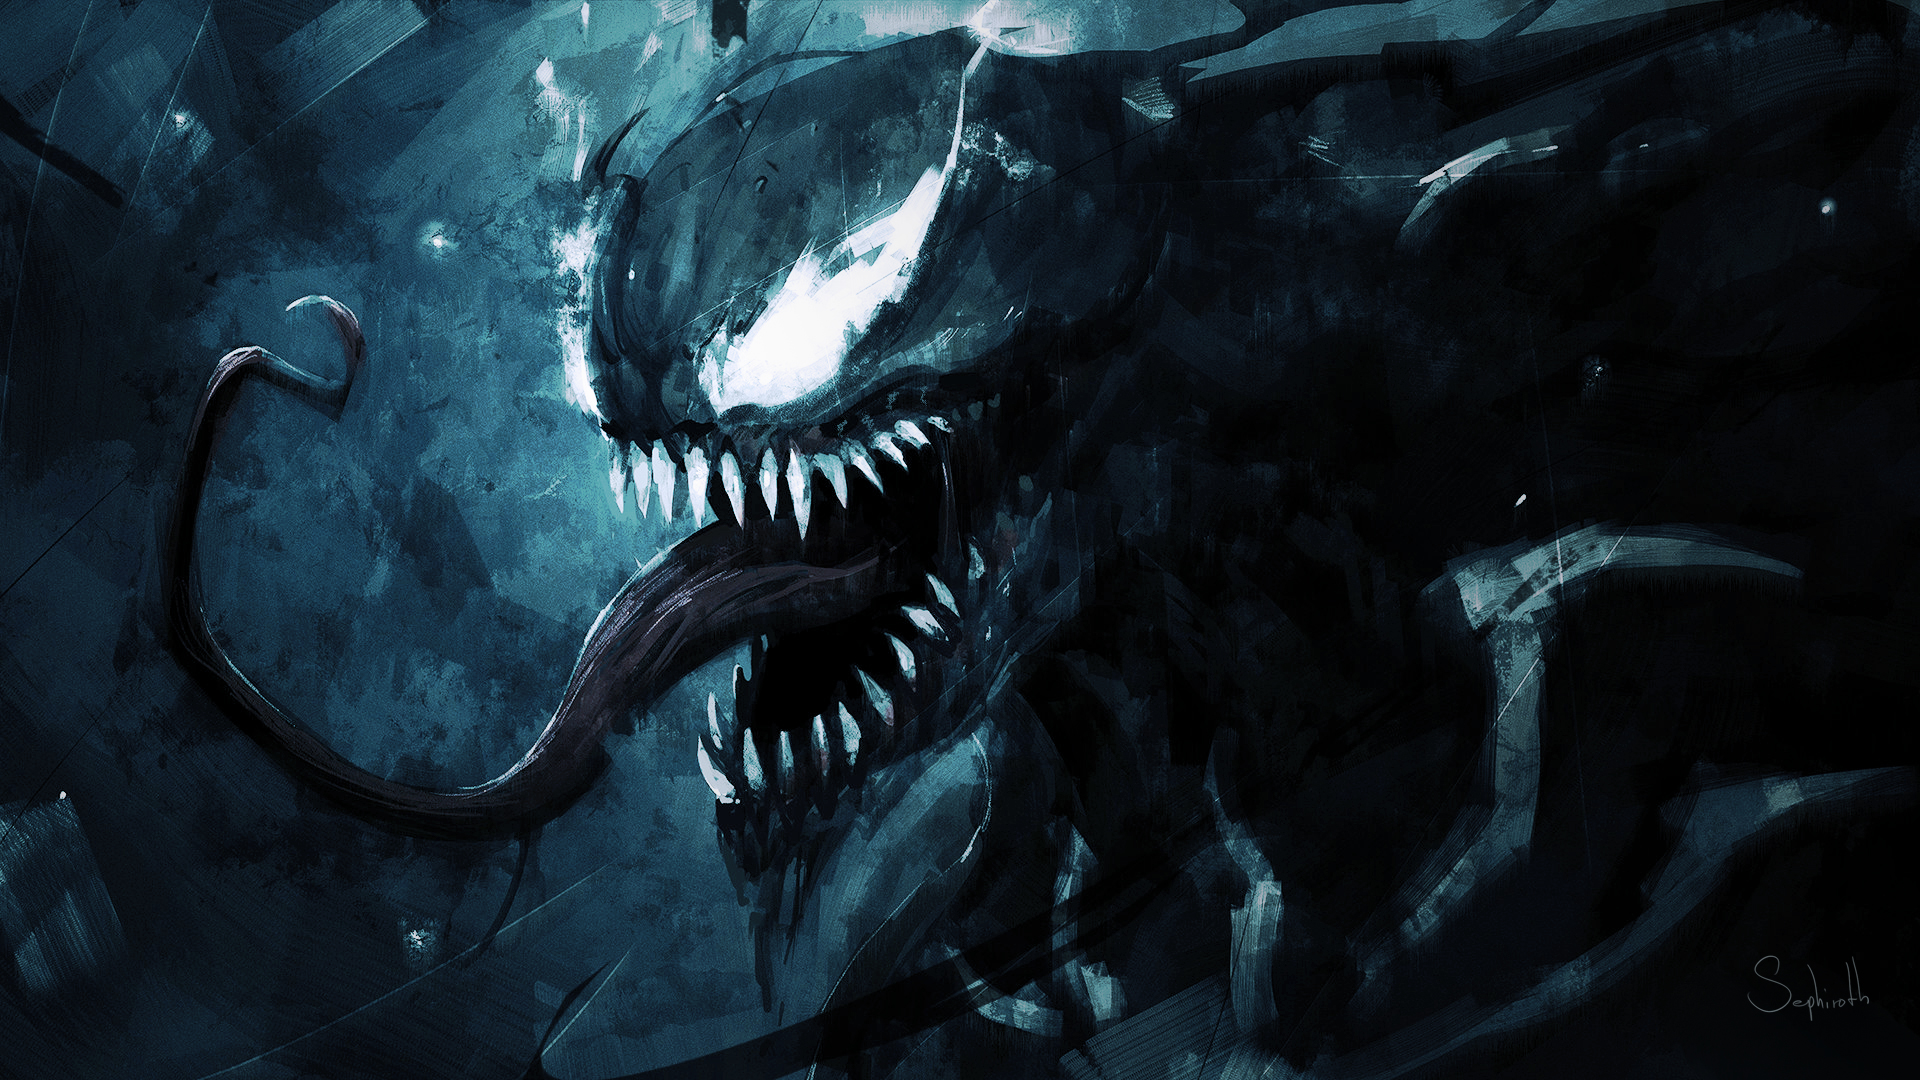 Venom Wallpaper Hd For Android Free Download And Software Reviews